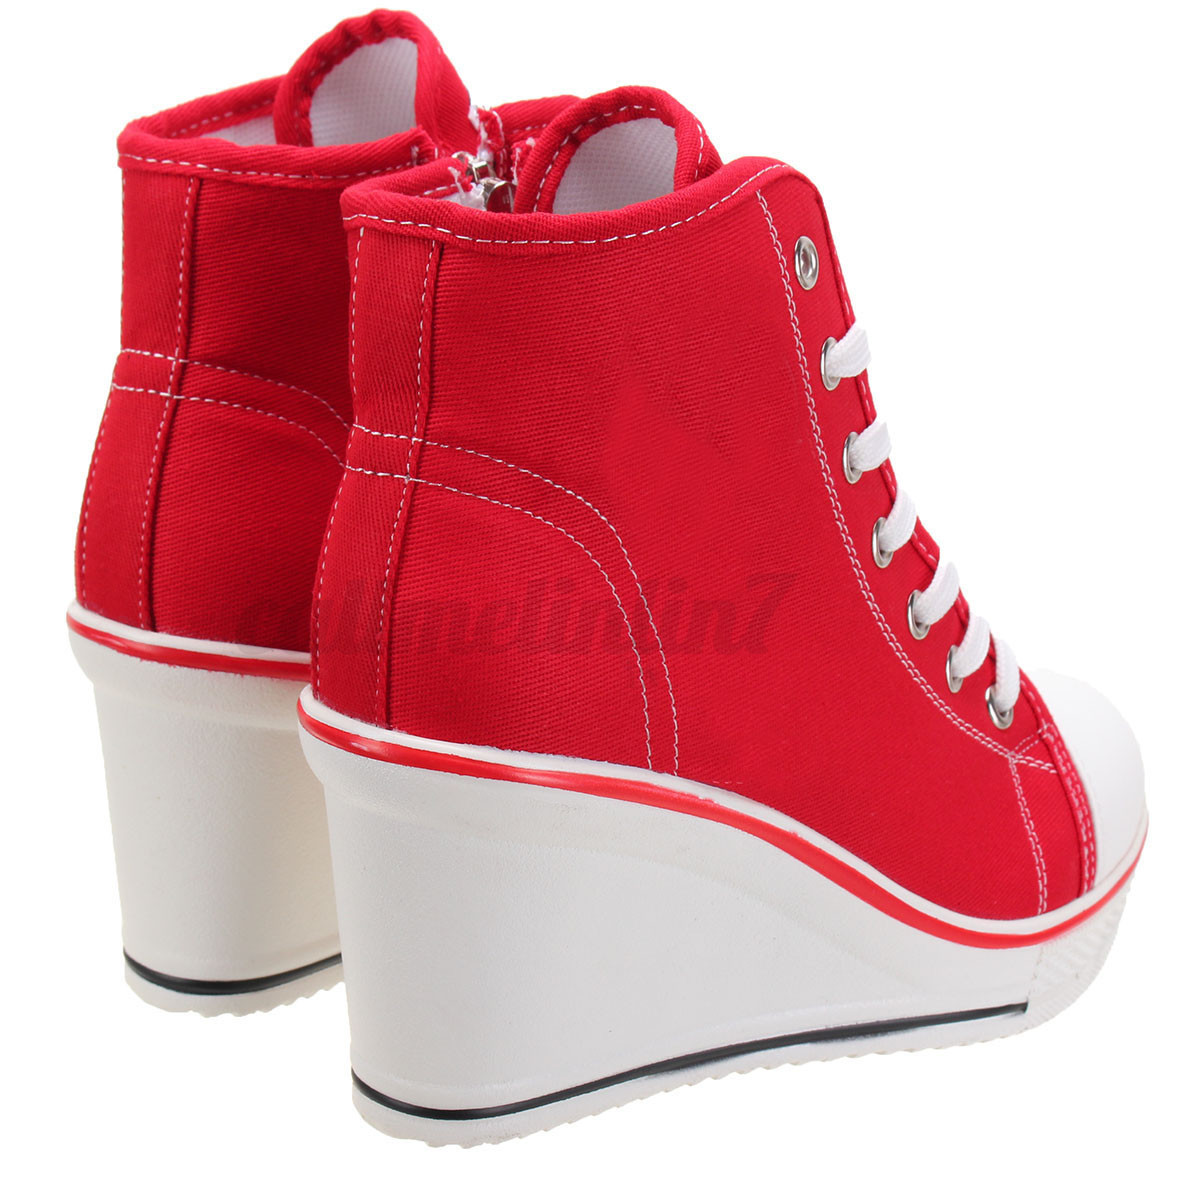 womens lace up canvas wedge shoes zip high top